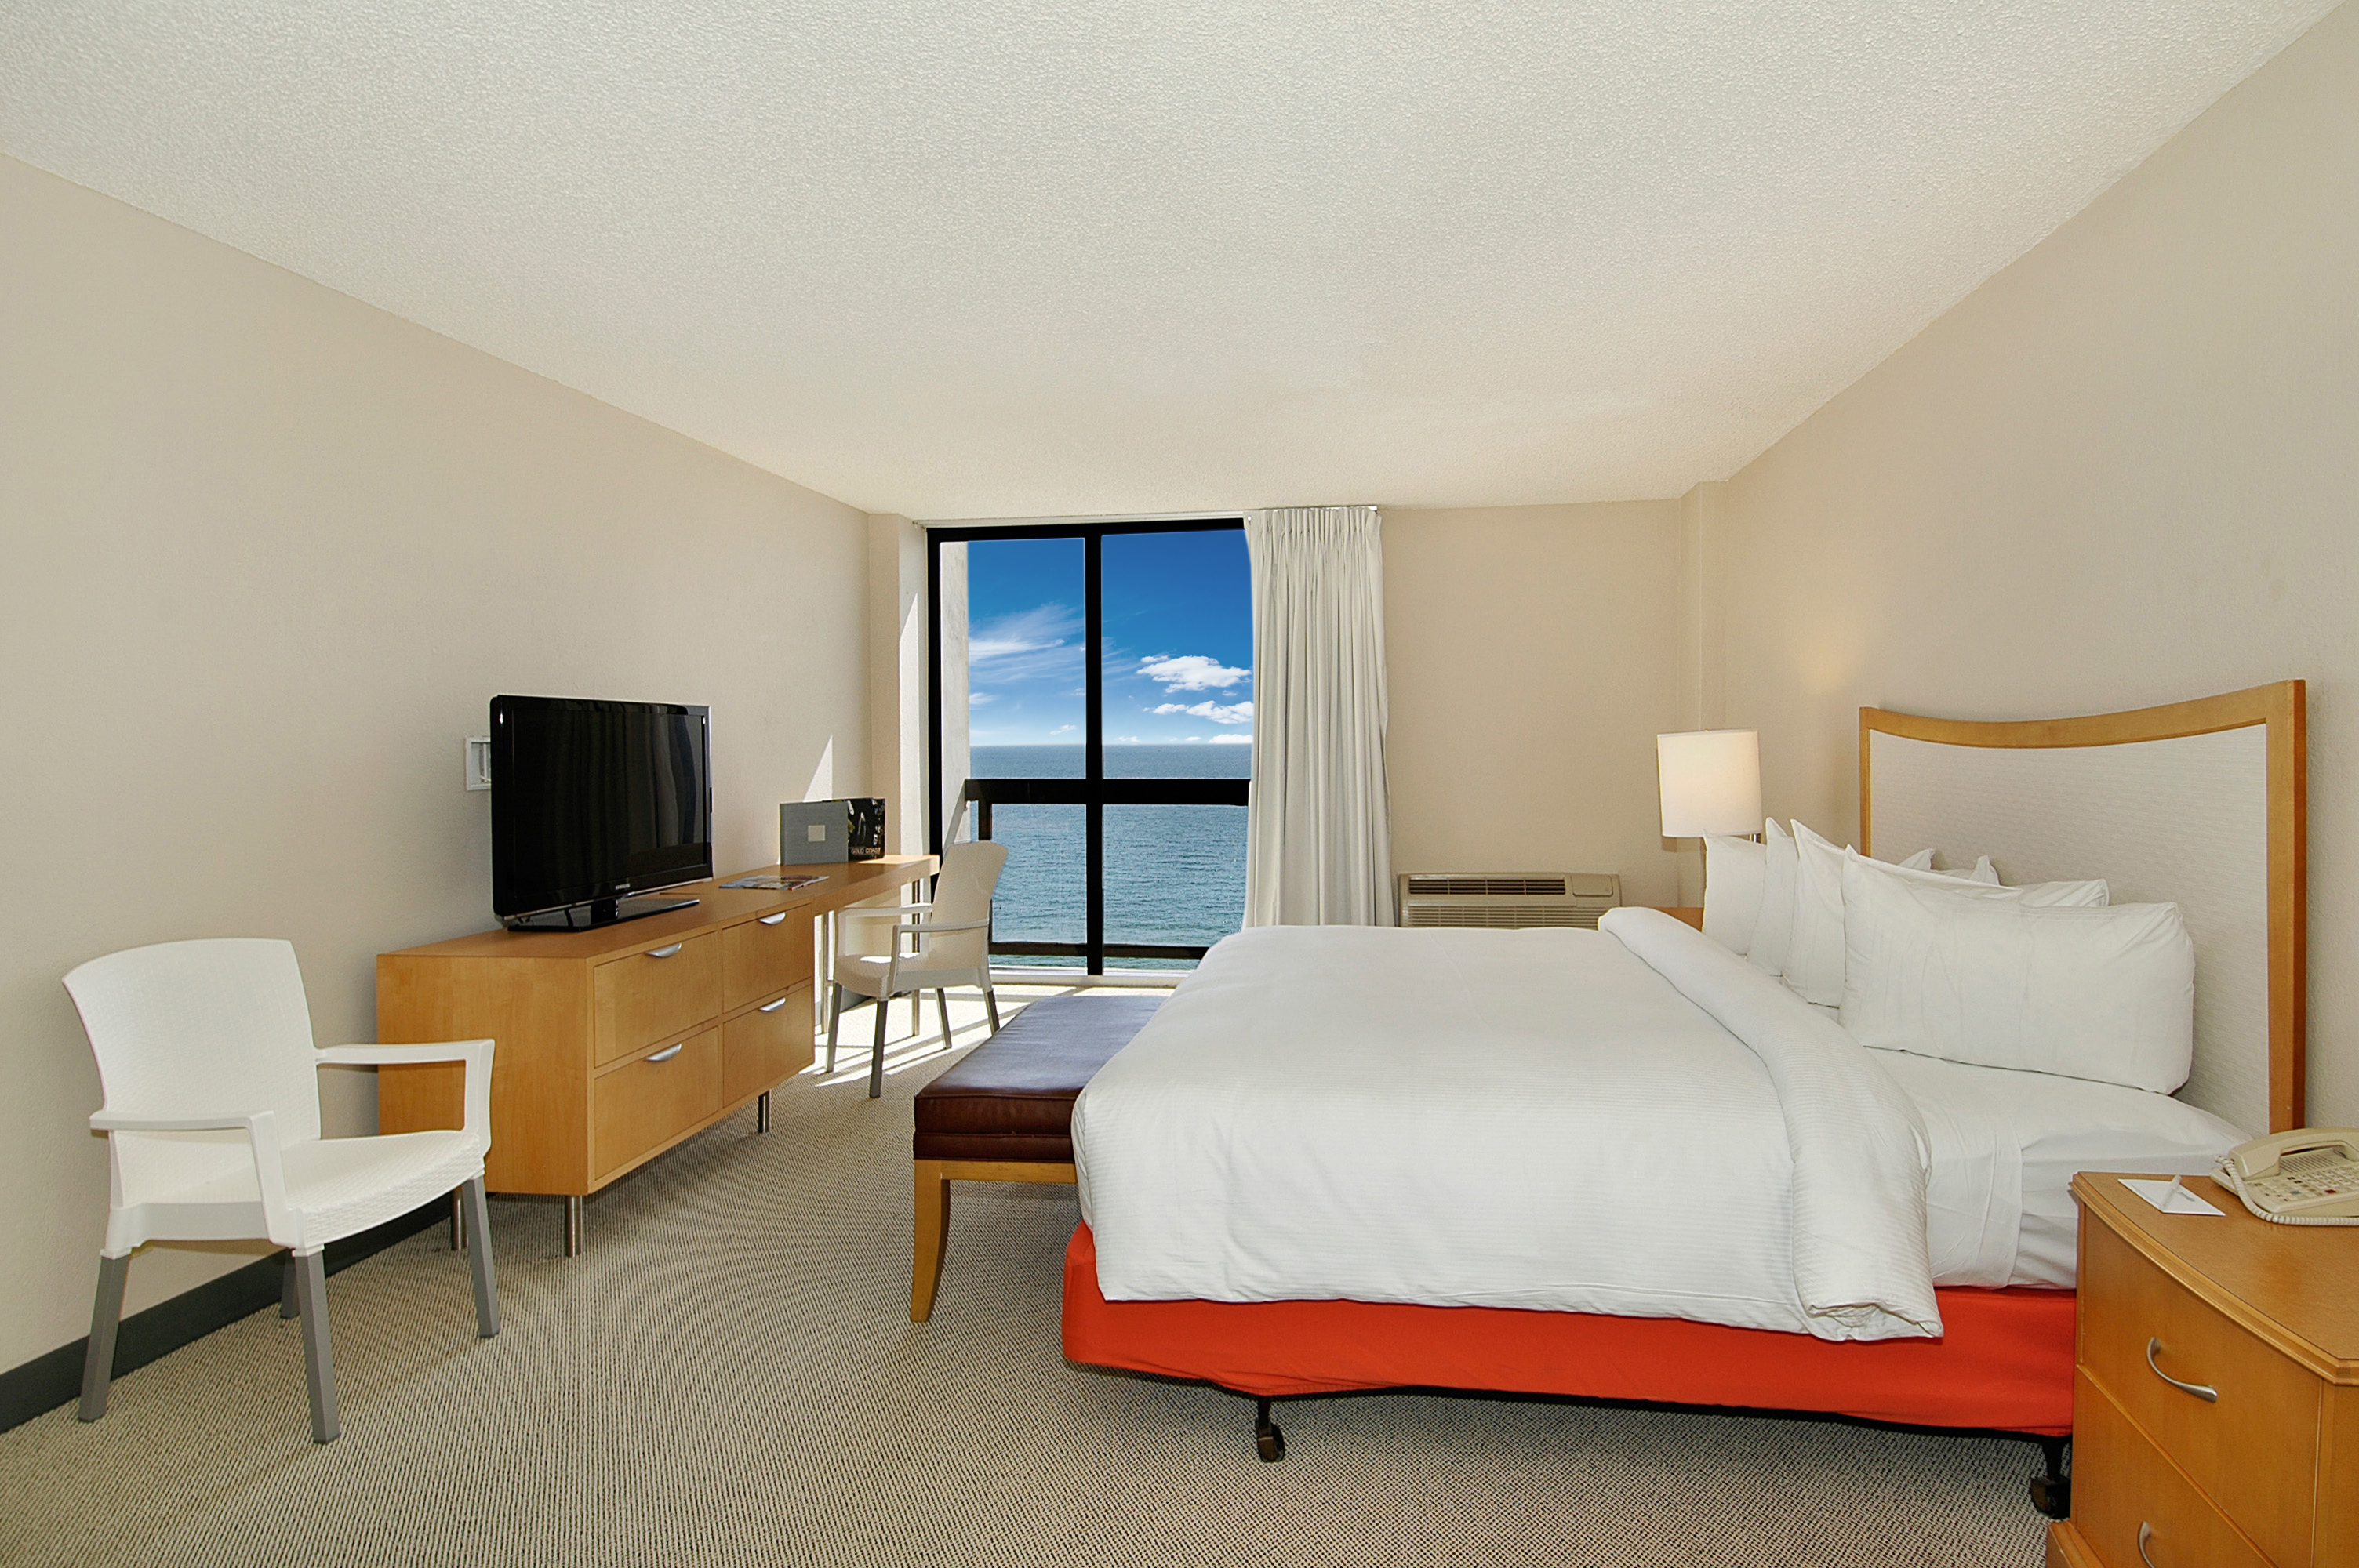 Bahia mar fort lauderdale beach a doubletree by hilton Two bedroom suites in fort lauderdale